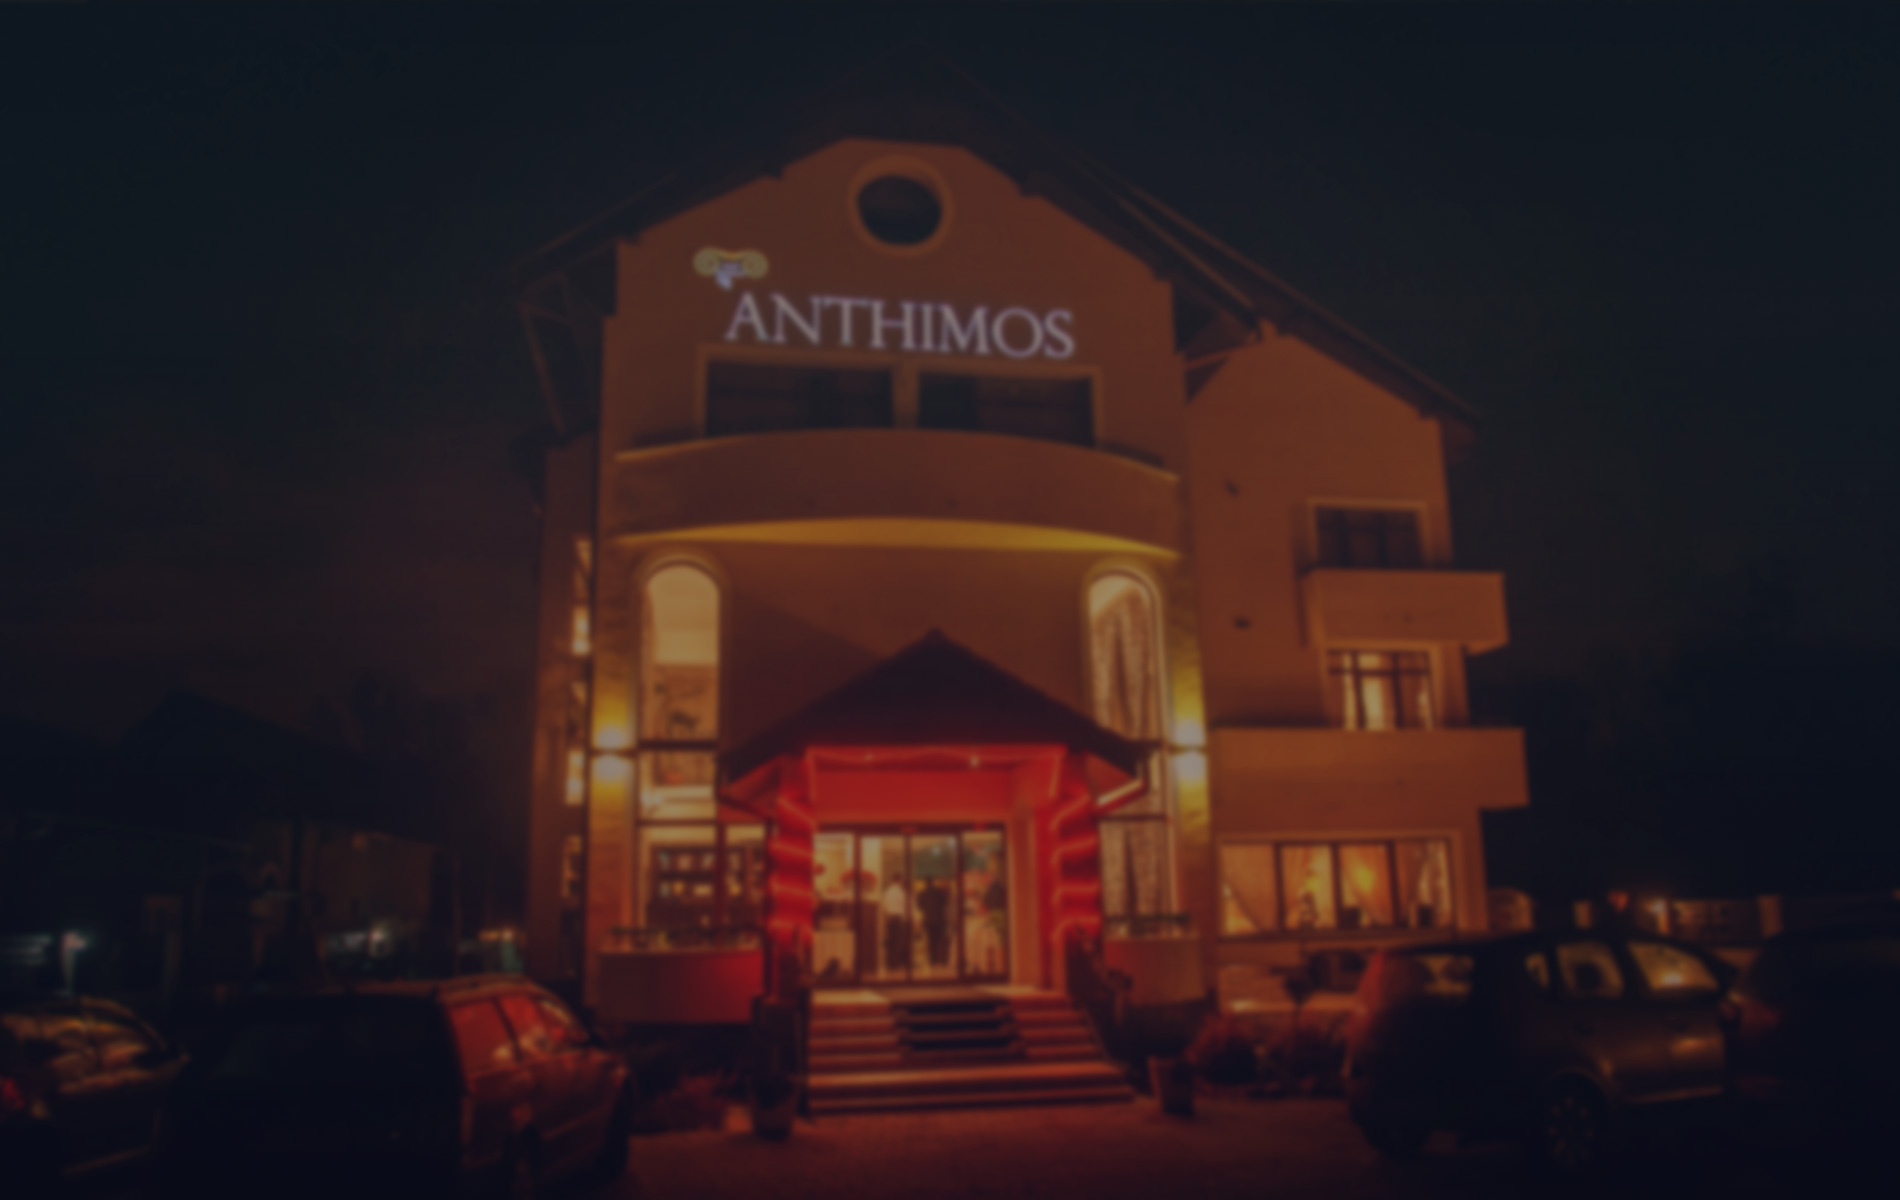 About Anthimos